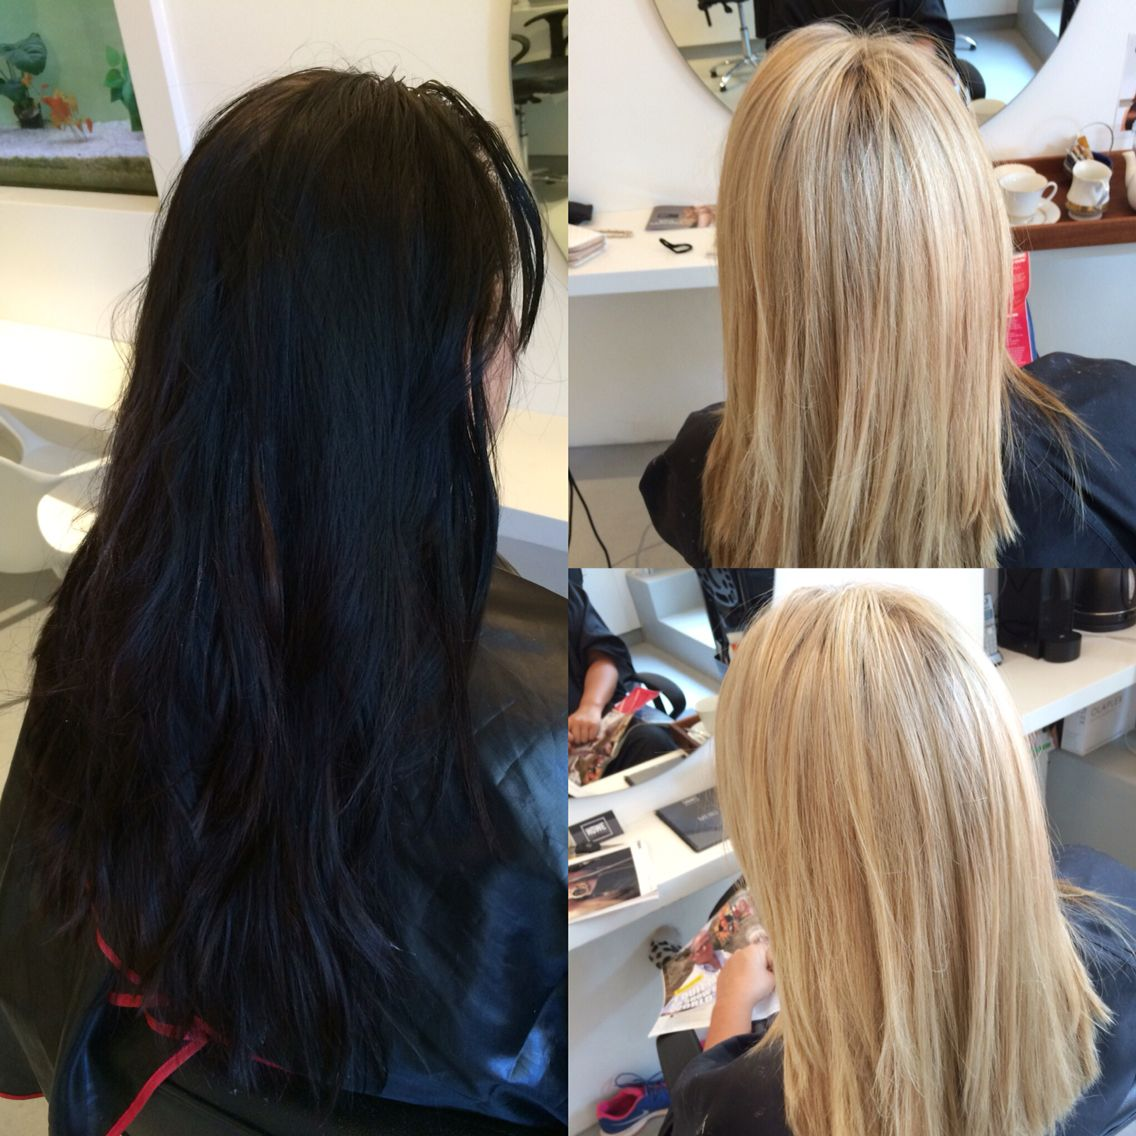 Before And After Black To Blonde Olaplex Hair Transformation